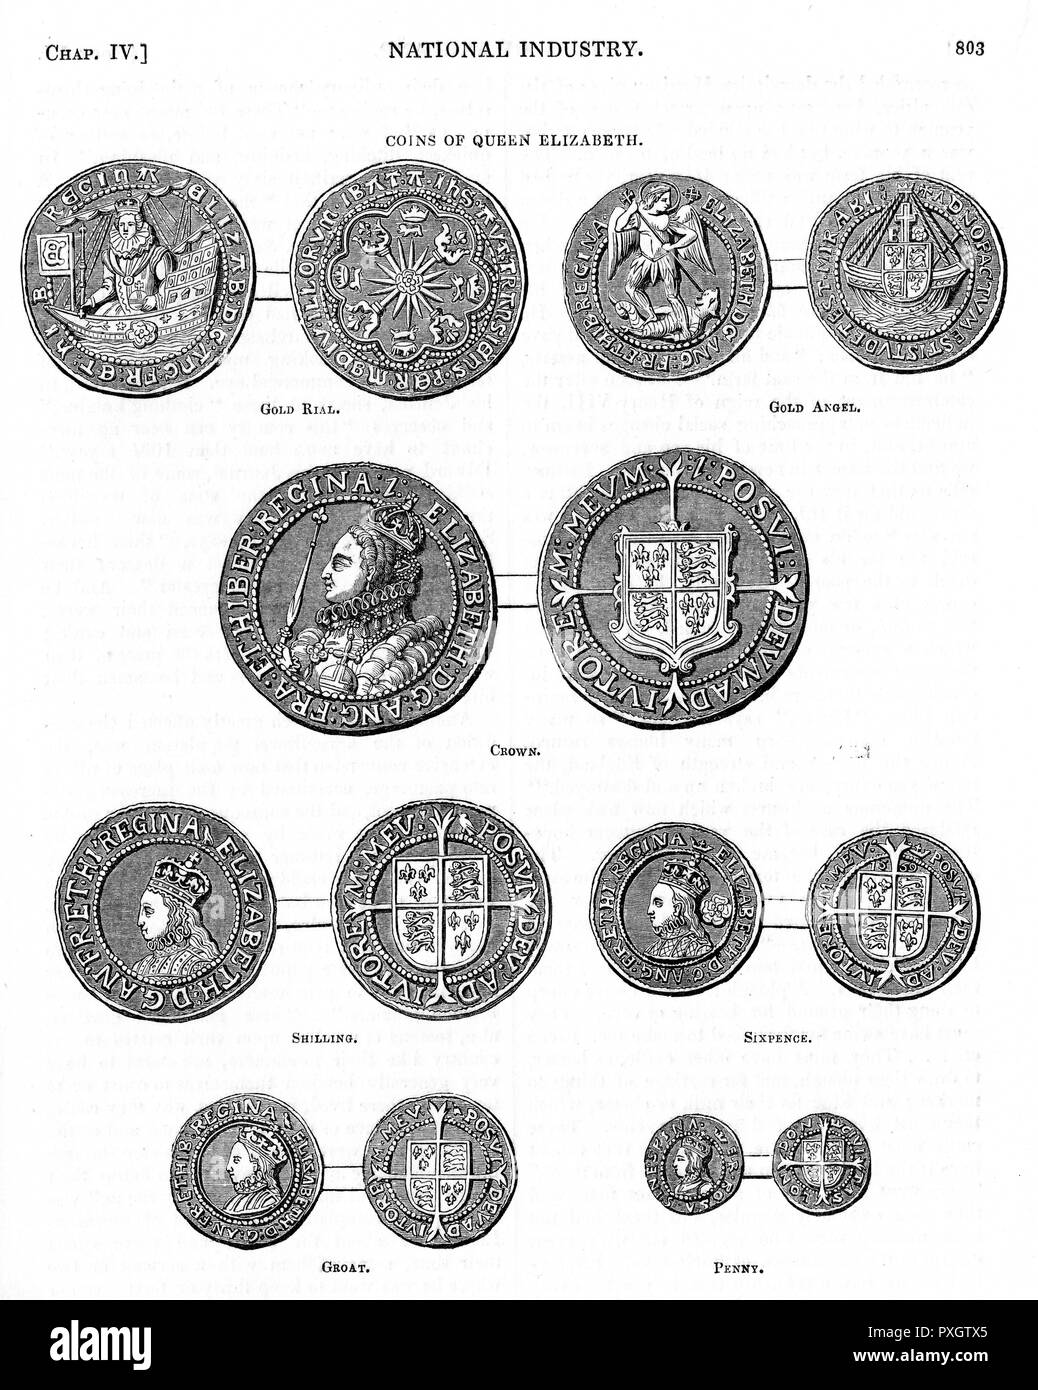 A selection of British coinage dating from Queen Elizabeth's reign. These include a Gold Rial, Gold Angel, Crown, Shilling, Sixpence, Groat and Penny.     Date: 16th Century - Stock Image